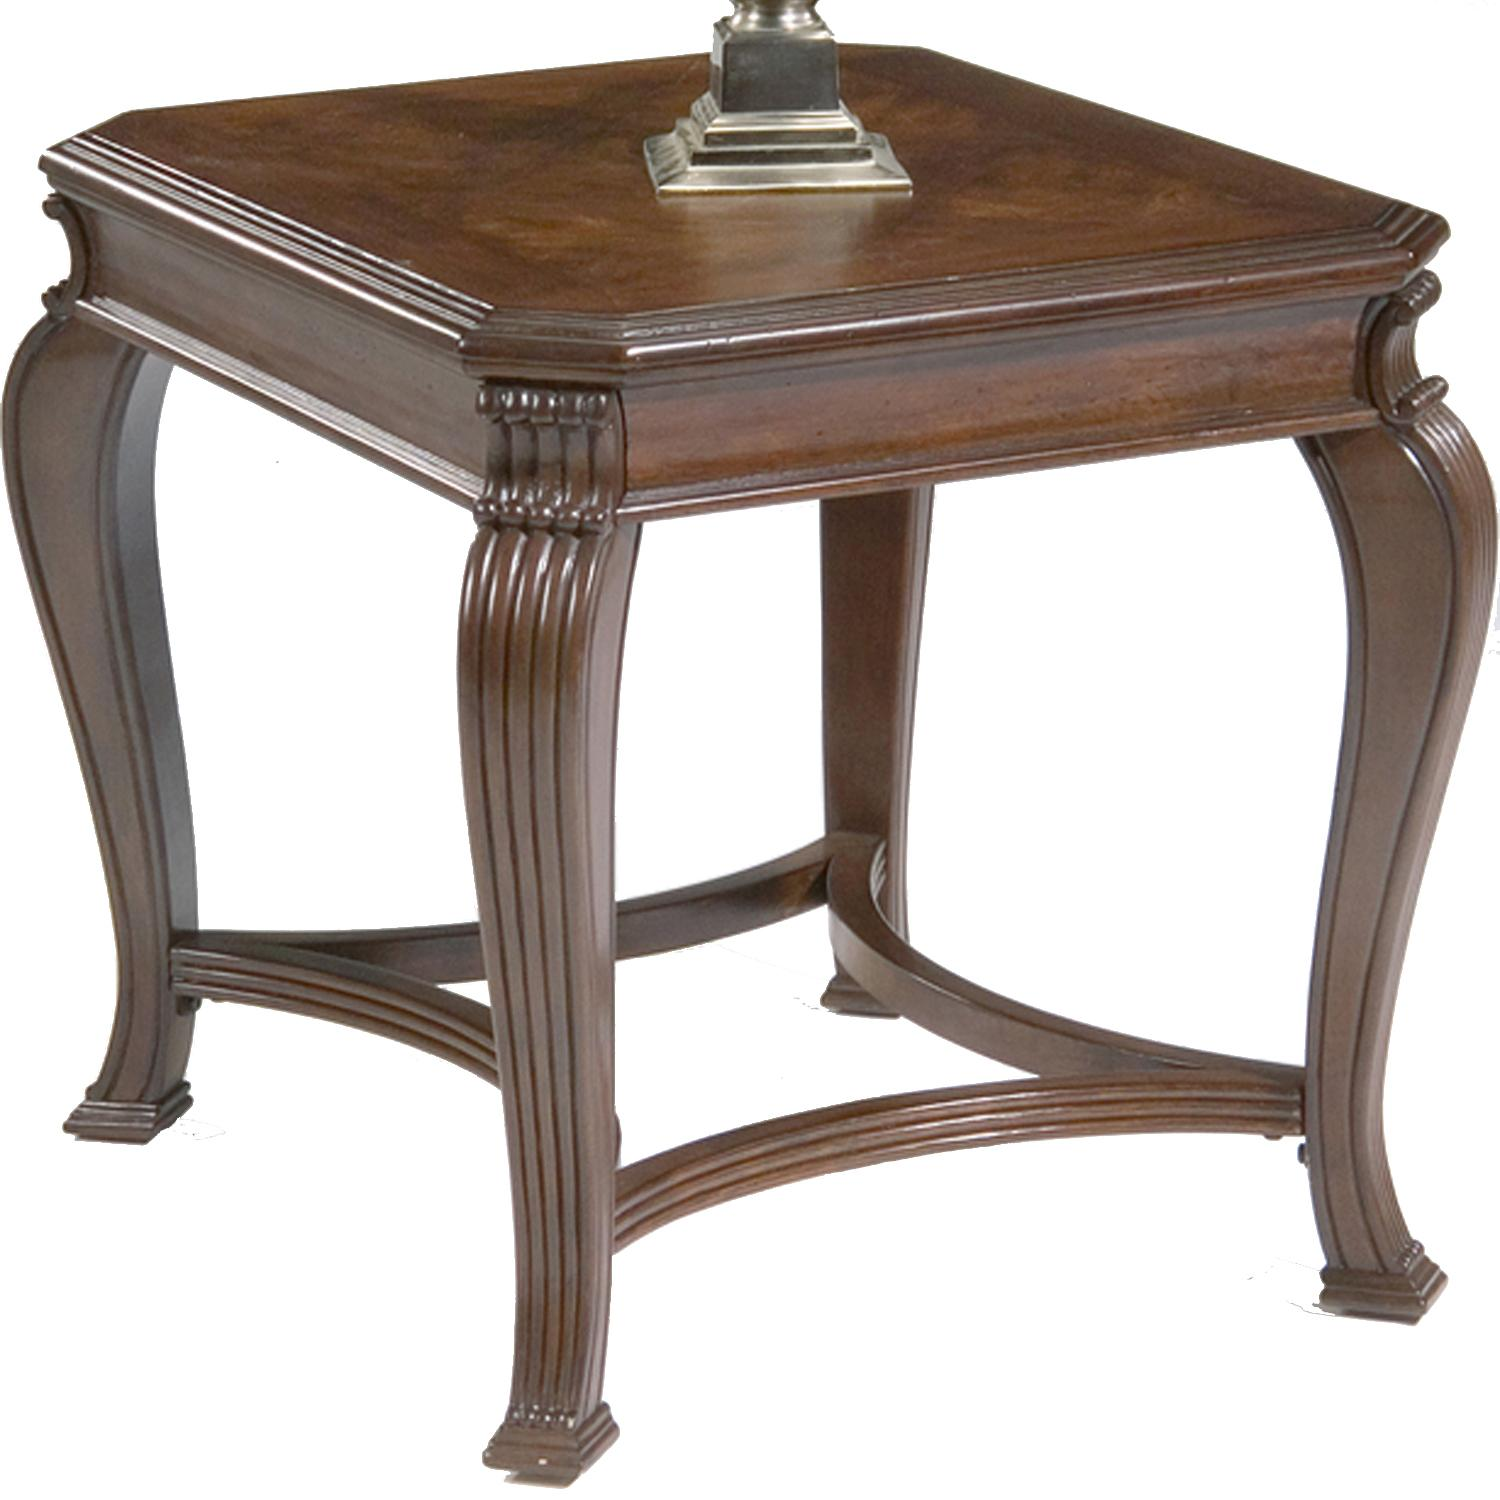 Liberty Furniture Ellington End Table - Item Number: 741-OT1020